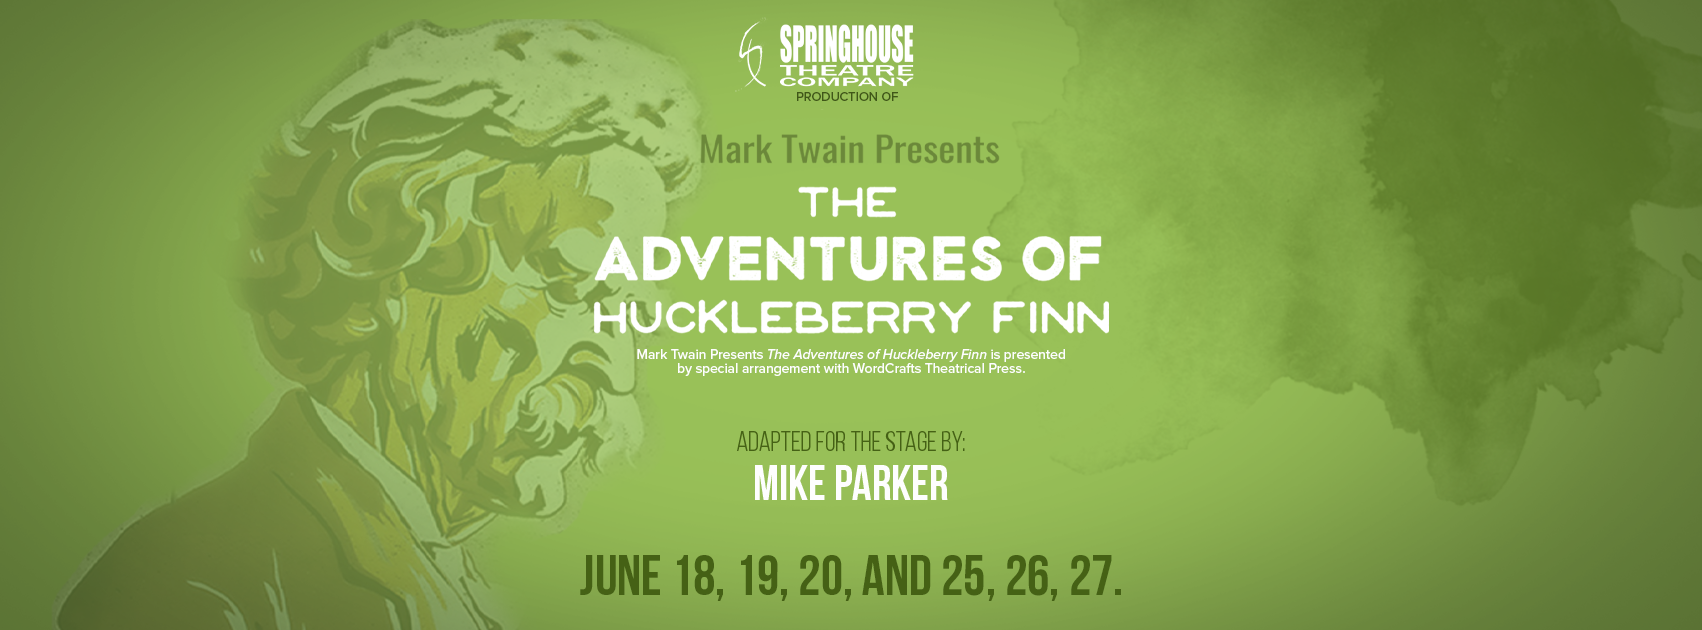 header image for tom sawyer presents the adventures of huckleberry finn